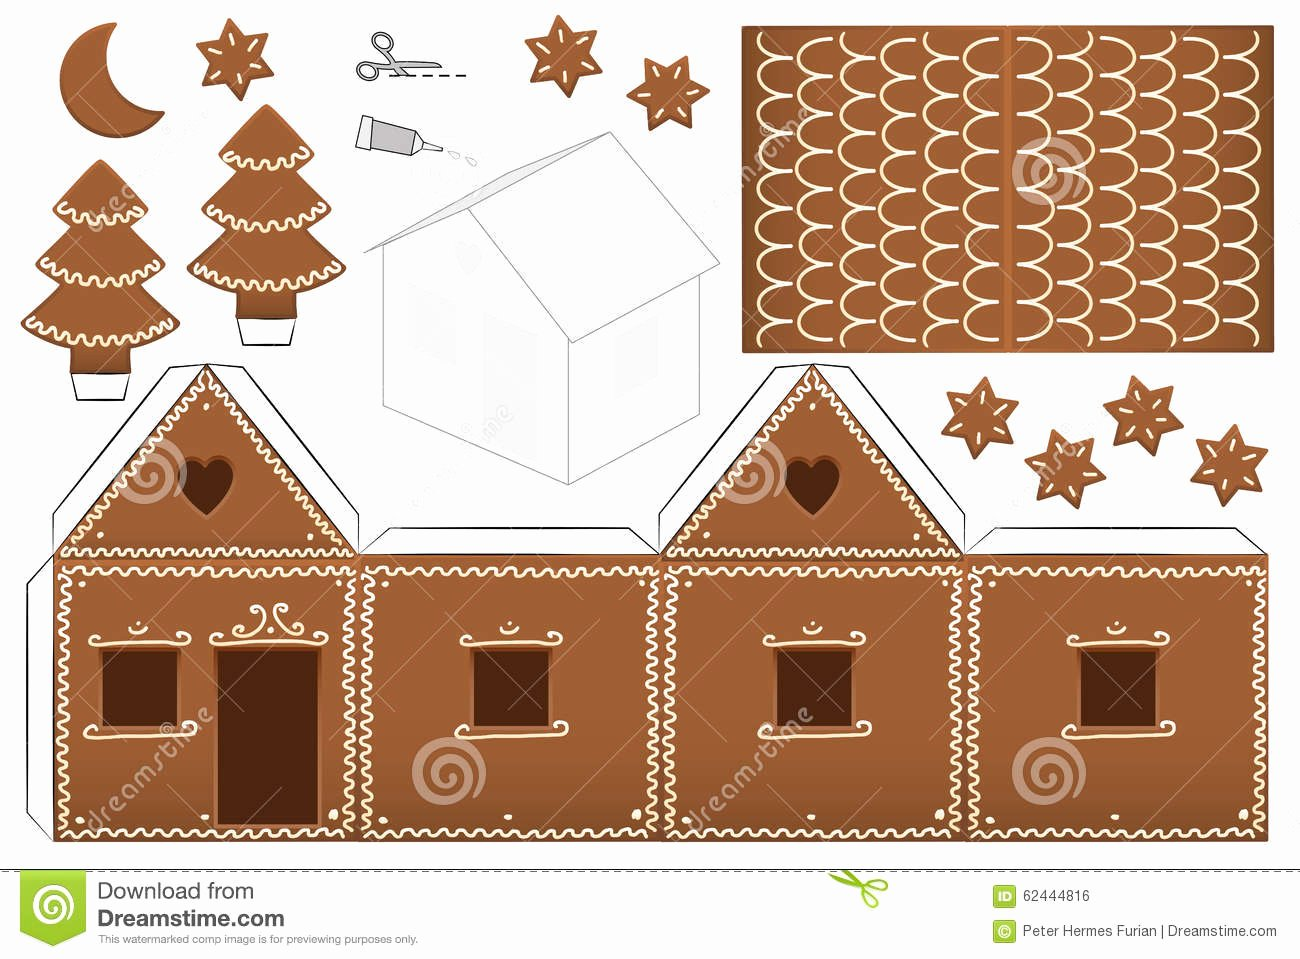 Gingerbread House Cut Out Inspirational Gingerbread House Paper Model Stock Vector Illustration